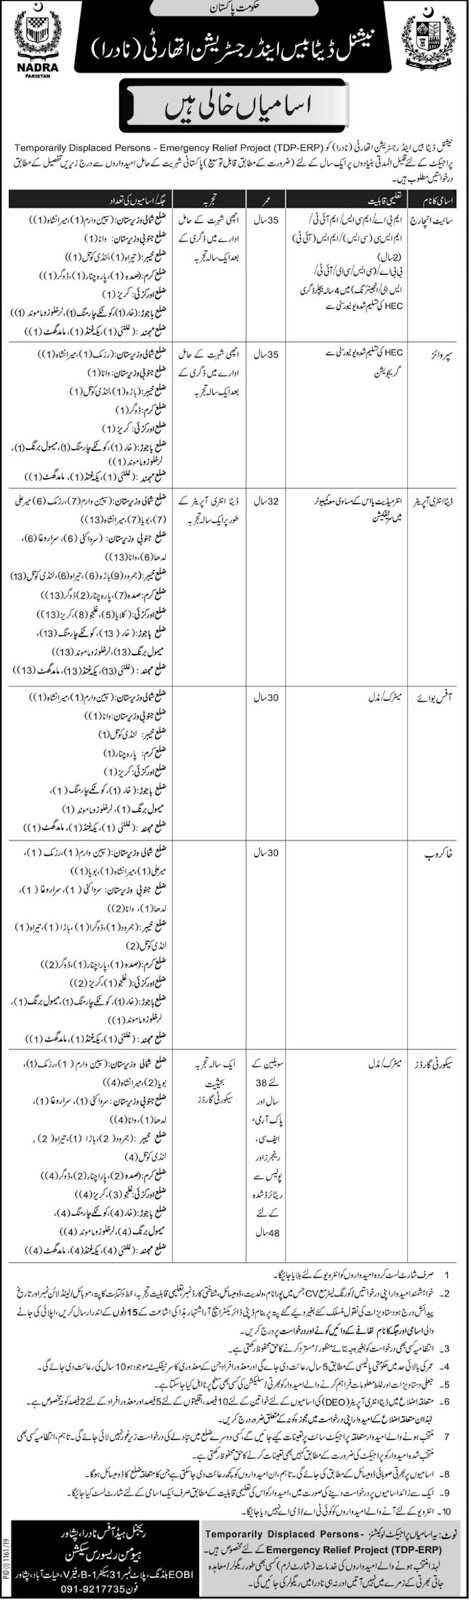 NADRA Pakistan Jobs 2019 National Database & Registration Authority